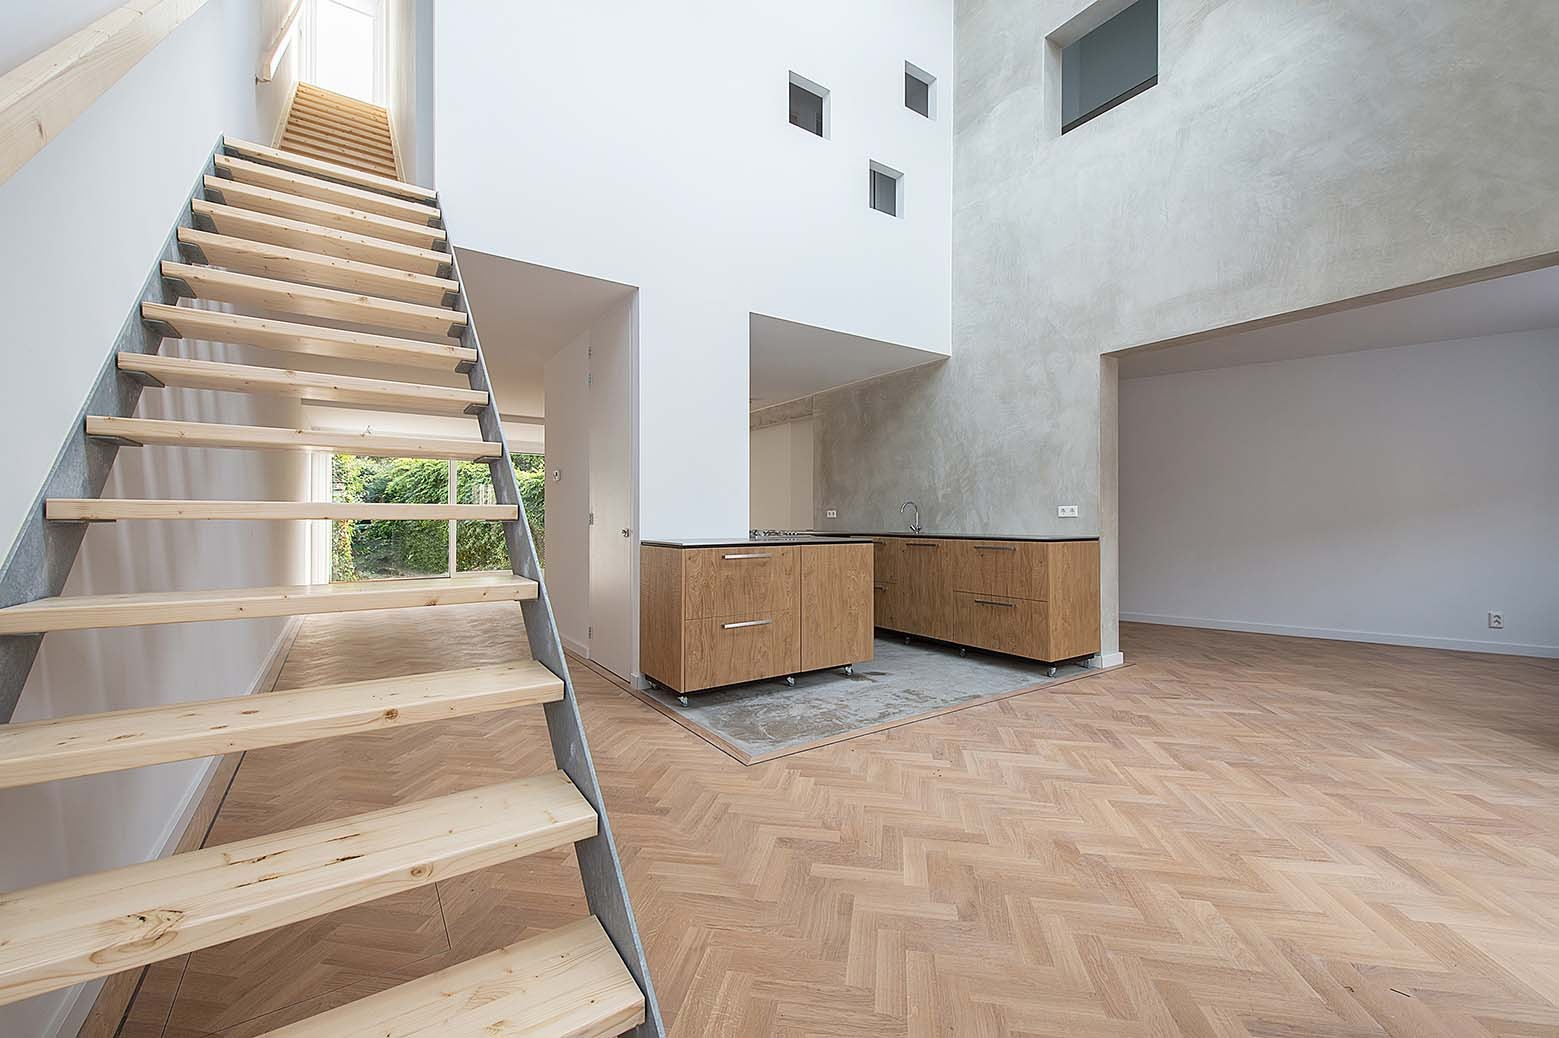 House in a House Global Architects ArchDaily